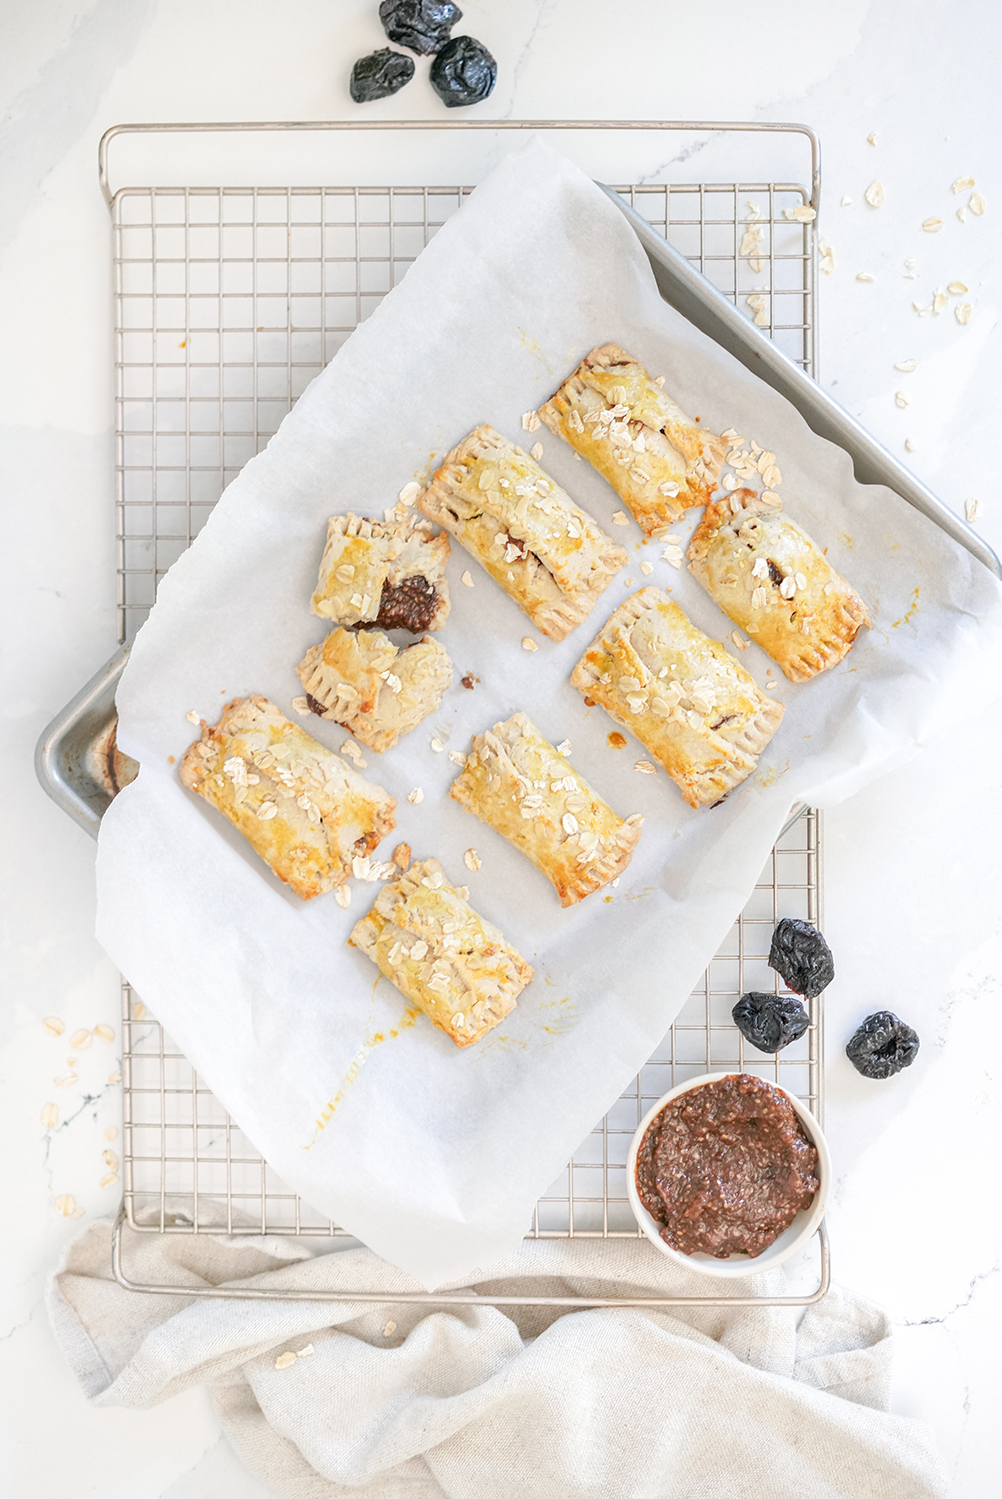 chia prune healthy energy bars laid out on a baking tray